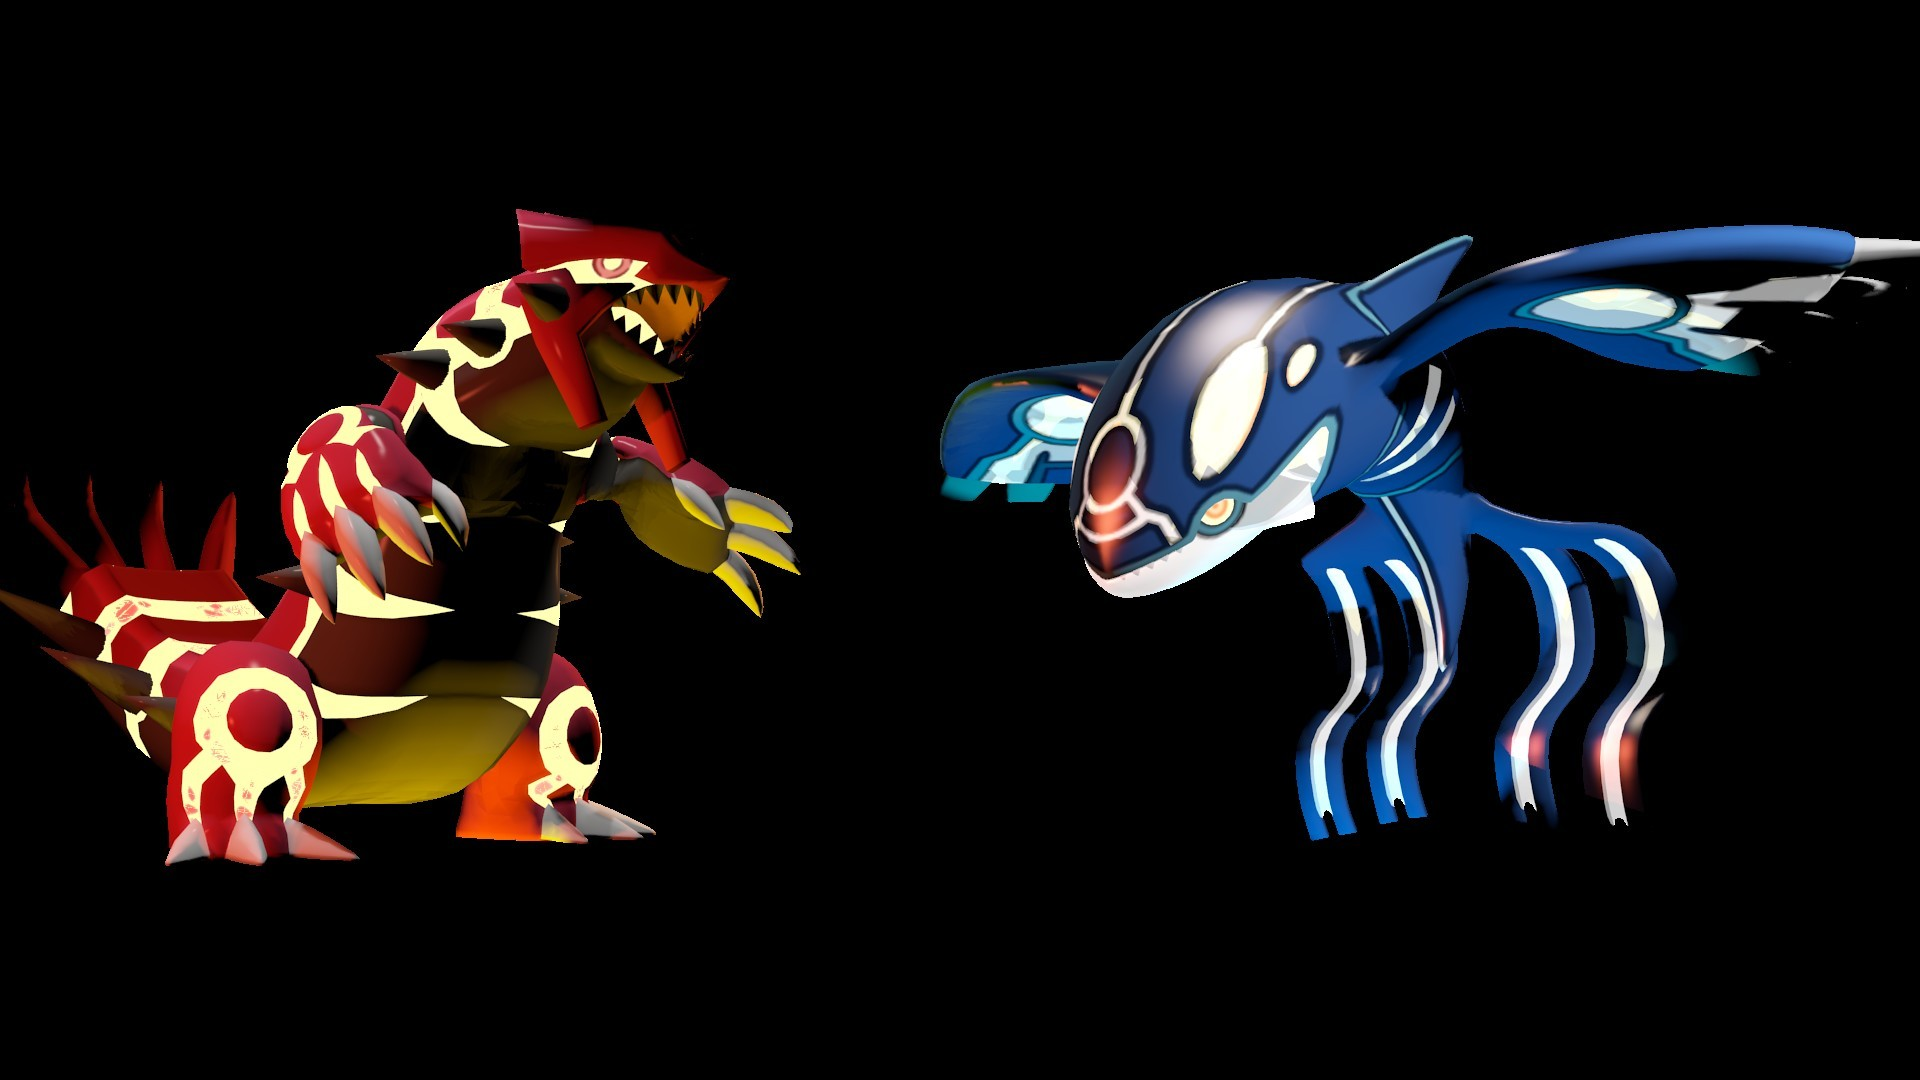 Primal Groudon and Kyogre Render by AndyDatRaginPyro Primal Groudon and  Kyogre Render by AndyDatRaginPyro